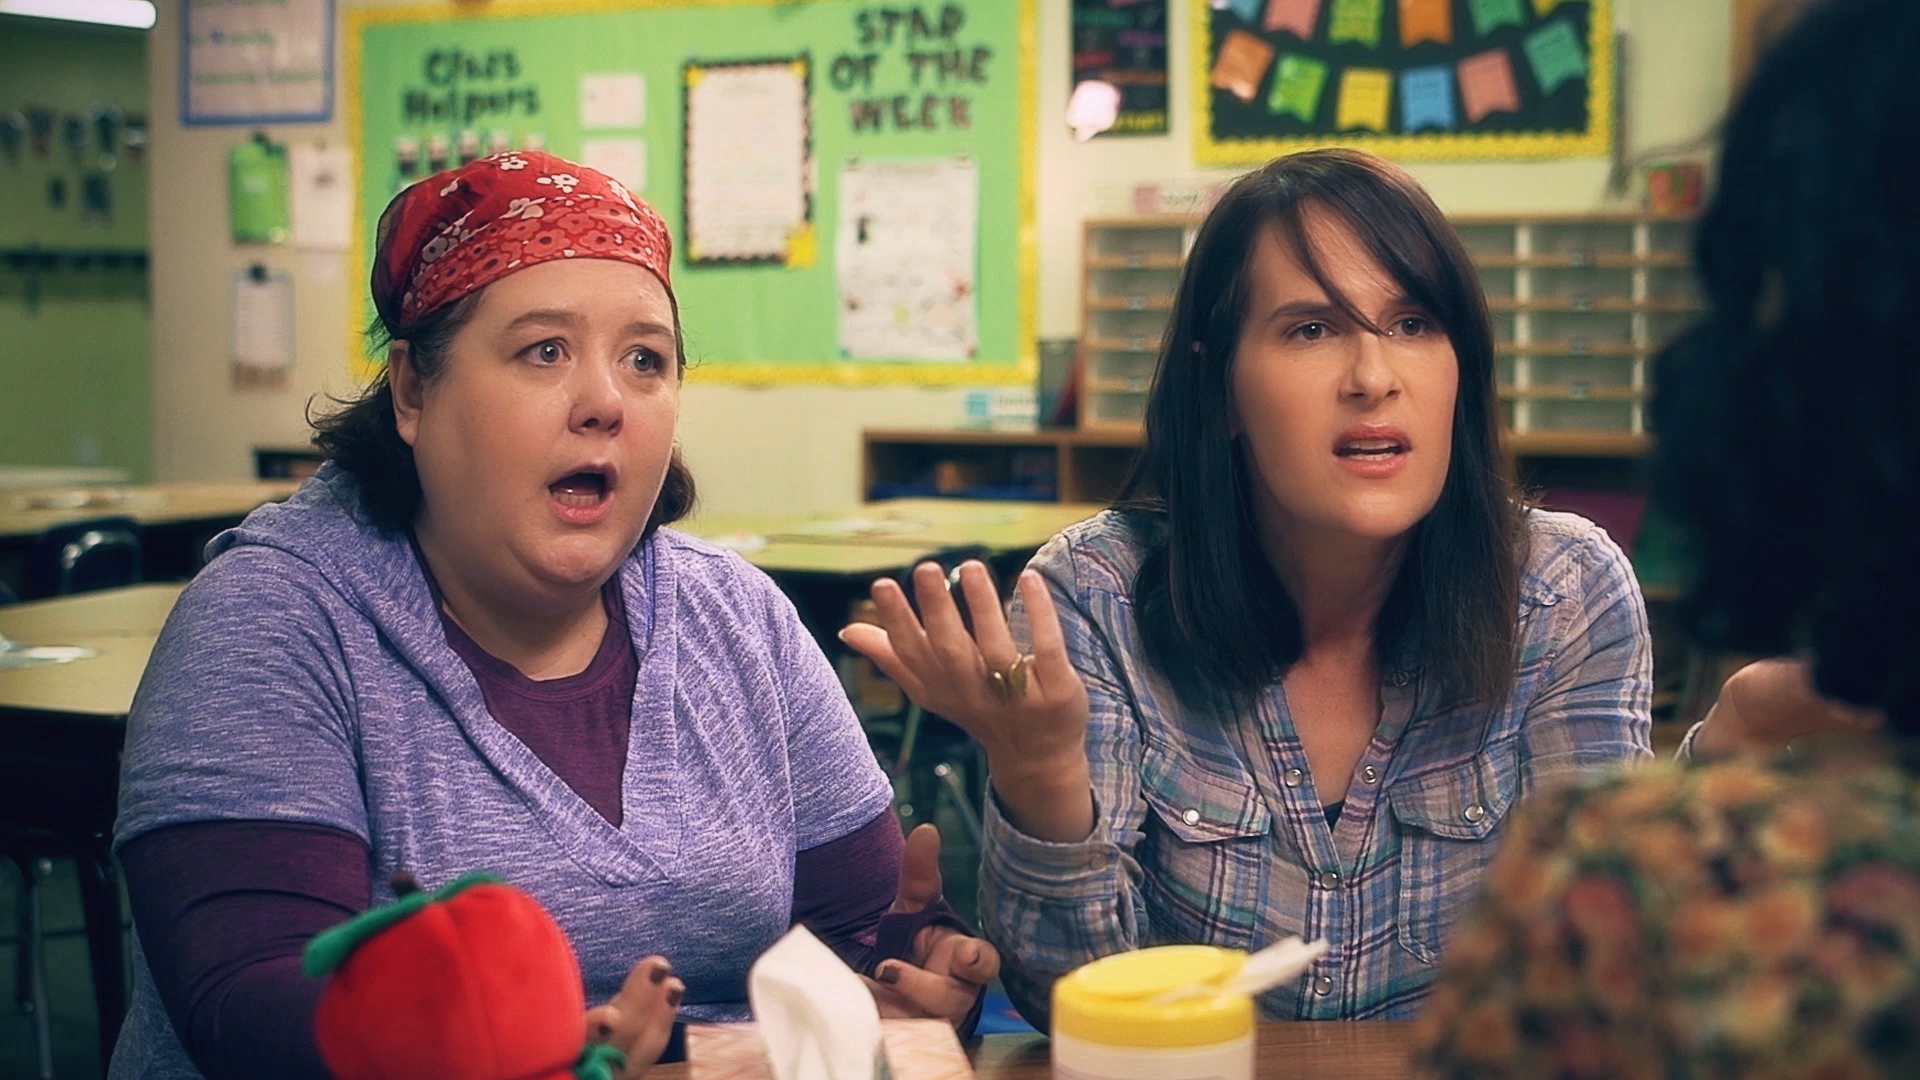 Sara Sevigny and Brooke Breit in Other People's Children, Courtesy of Lion and Mouse Productions.